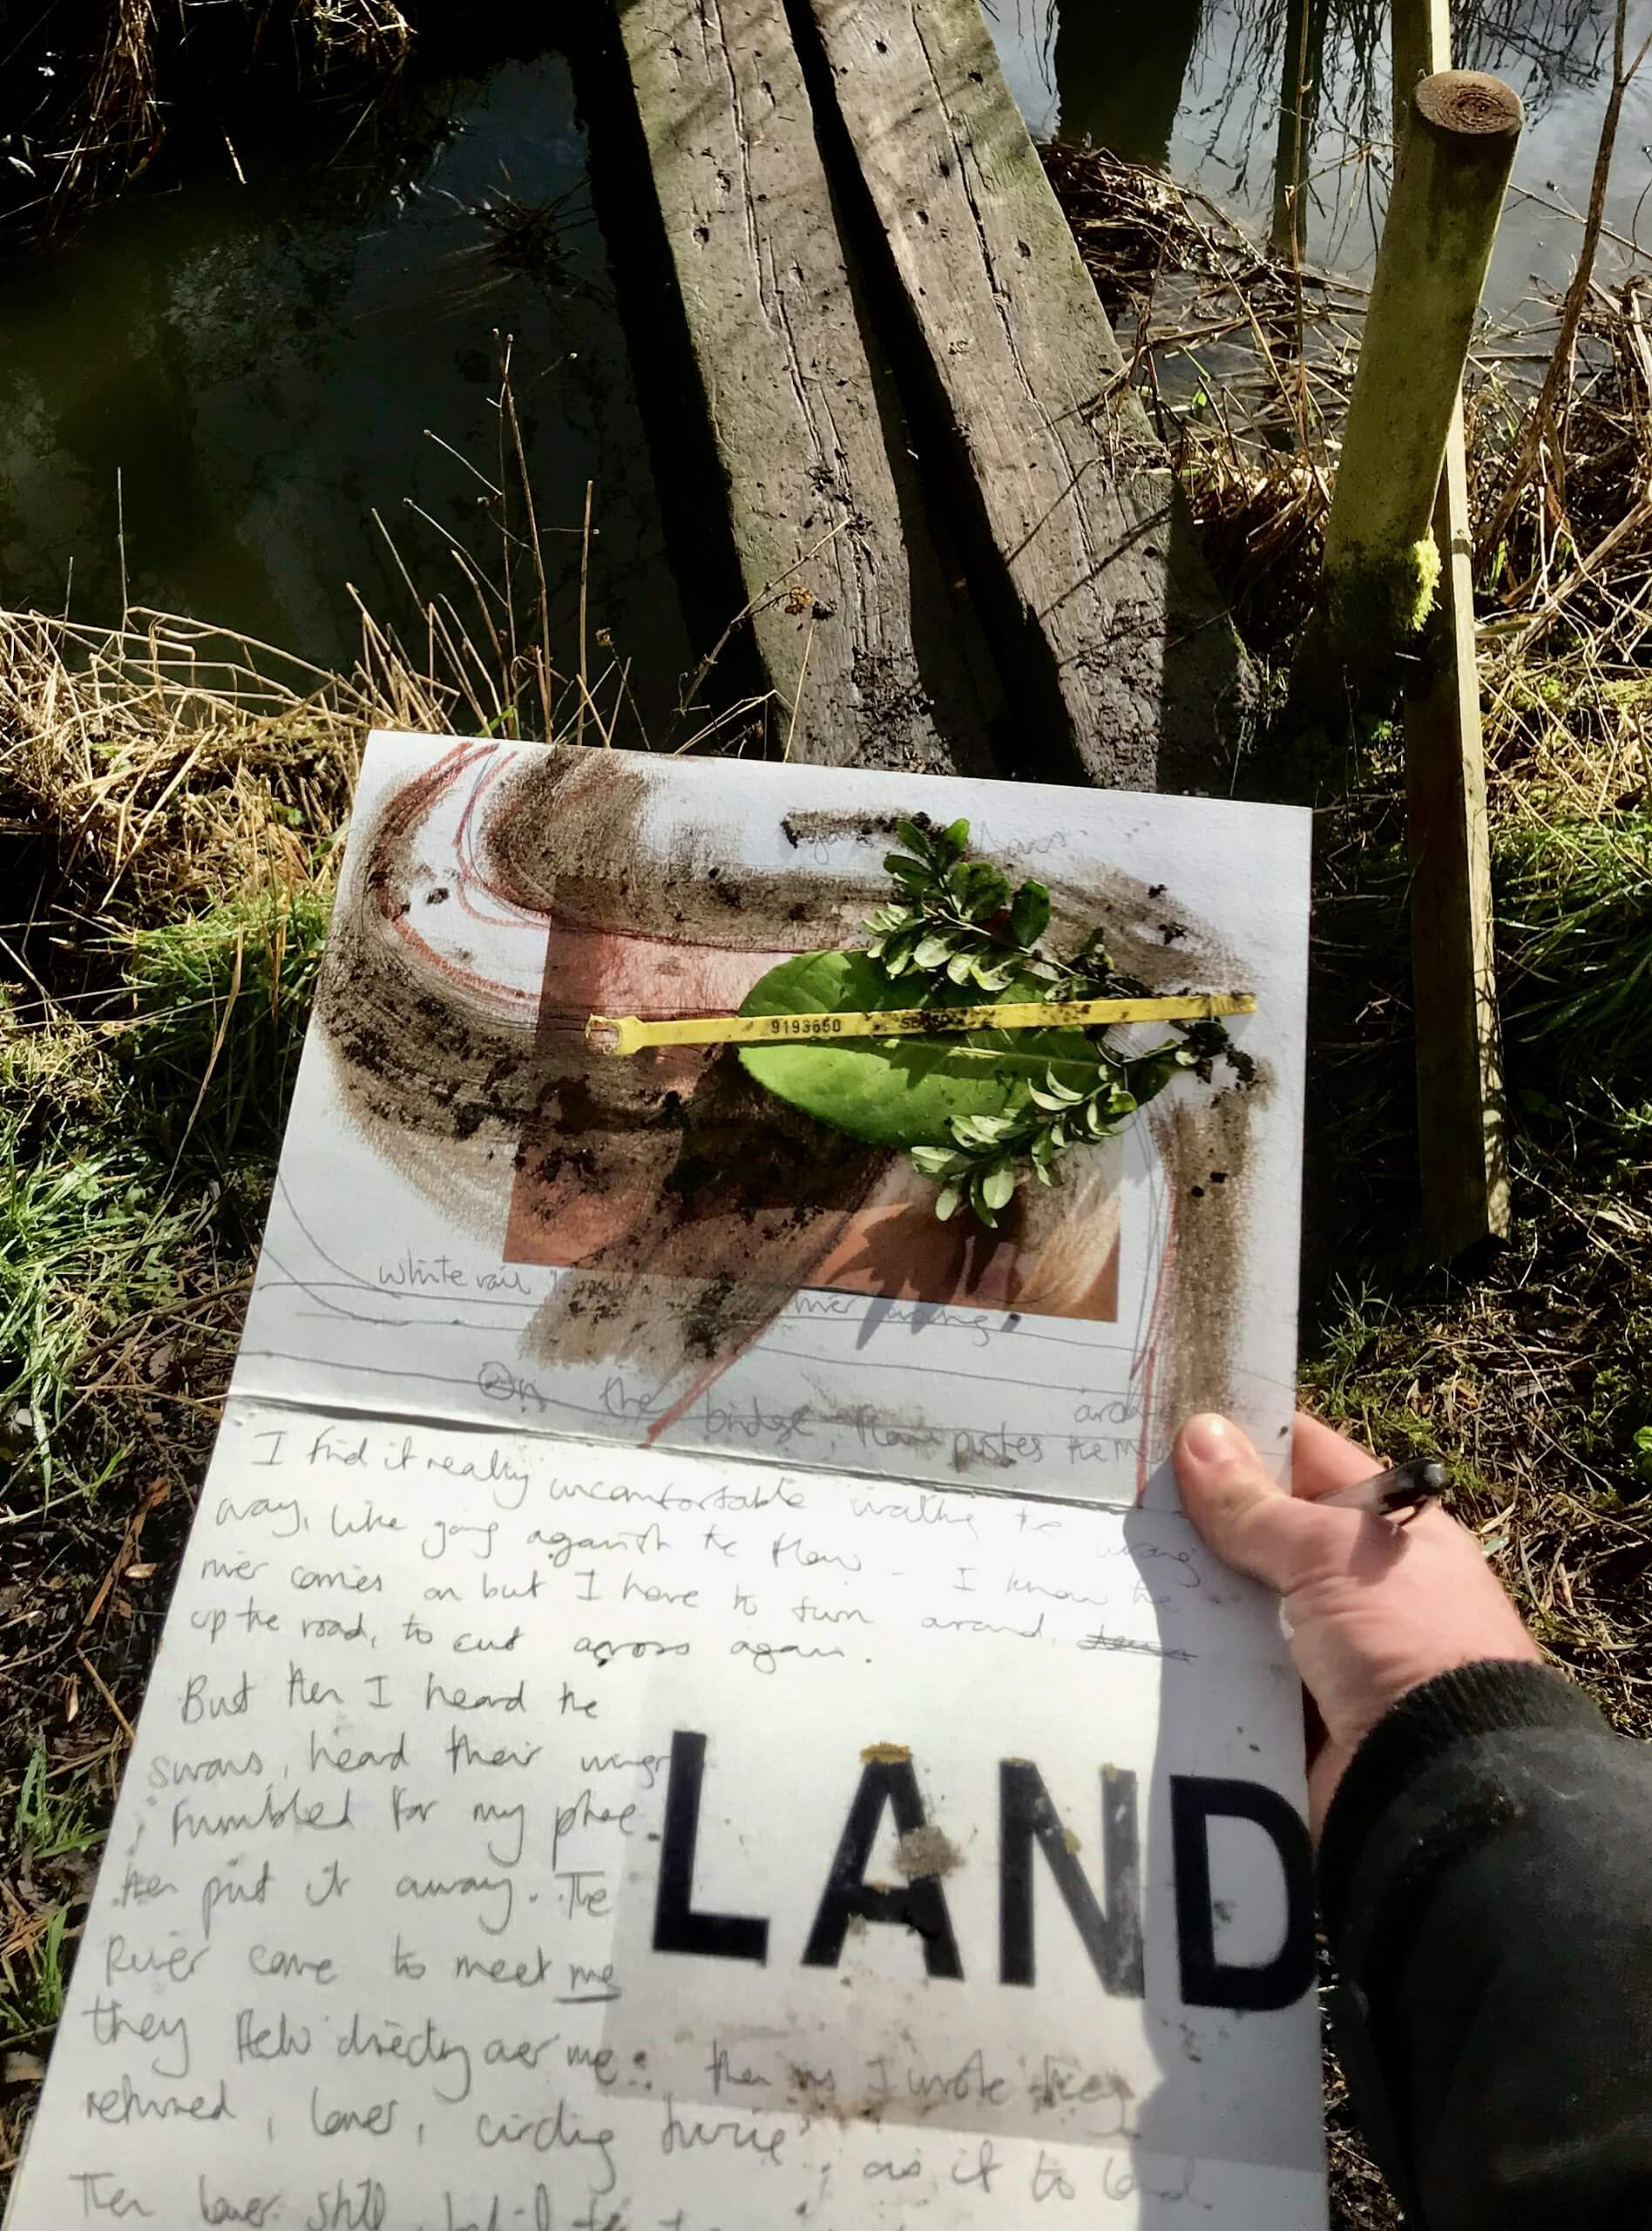 A person is holding a piece of paper with piece with text, including the word 'LAND' in large and capitals. There are leaves and dirt on the paper. The setting is a forest.